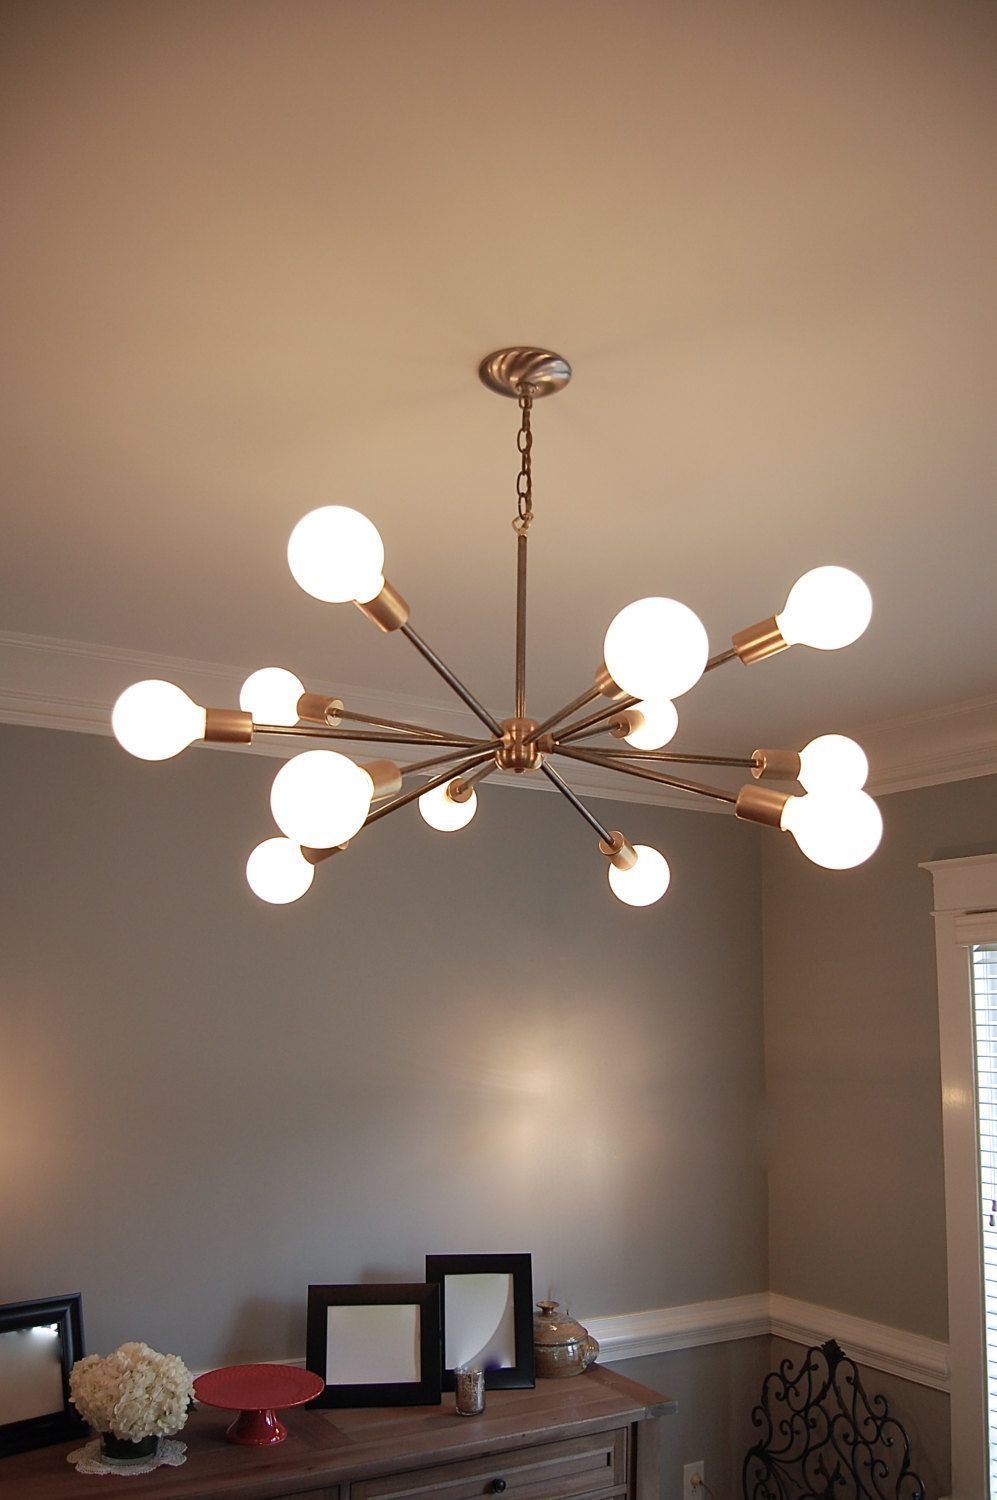 Turn Up Your Decor With These Mesmerizing Lighting Fixtures From